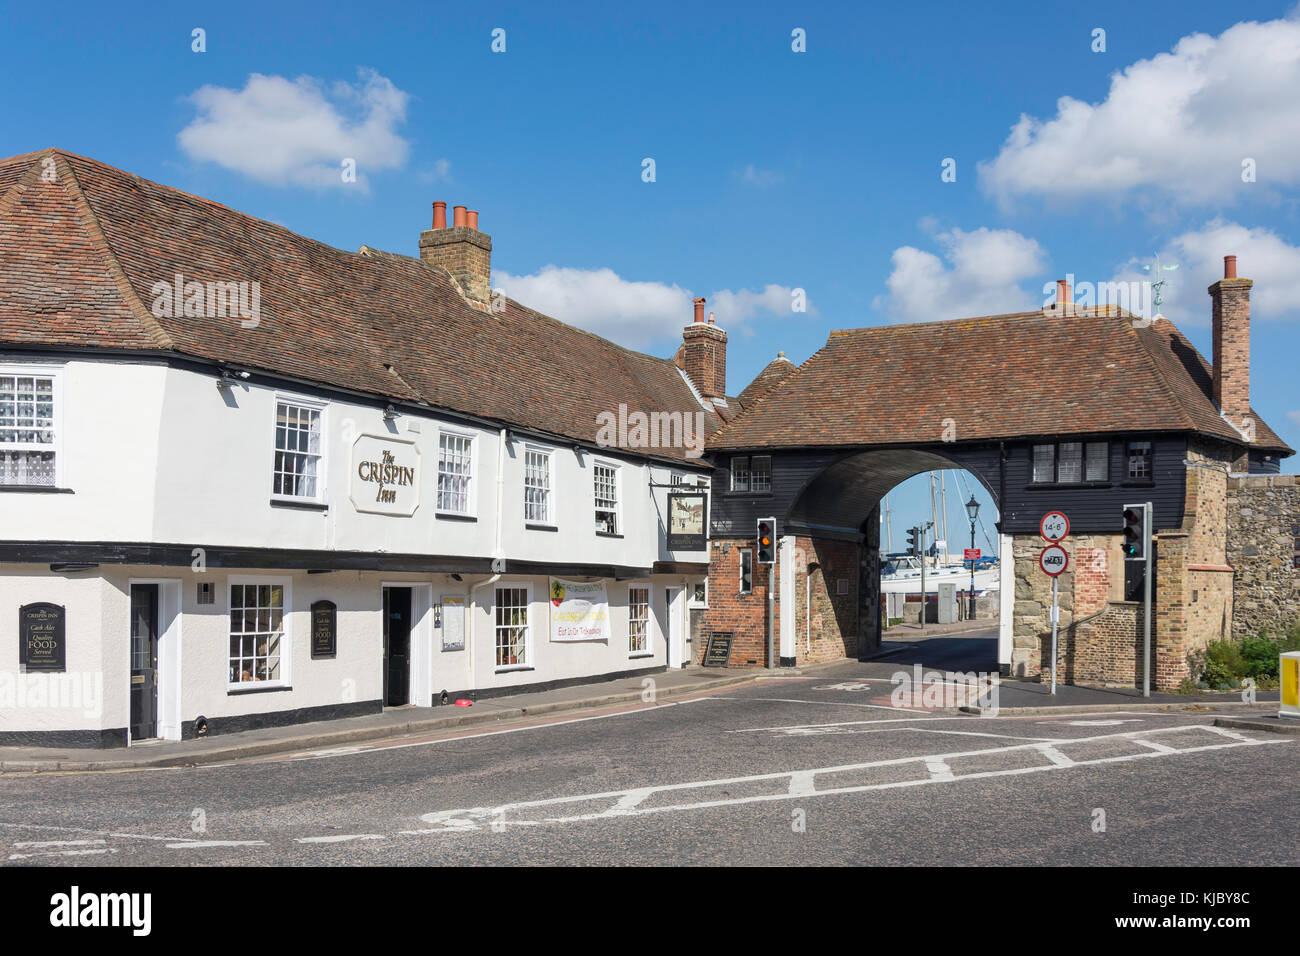 15th Century The Admiral Owen Pub and The Barbican, High Street, Sandwich, Kent, England, United Kingdom - Stock Image